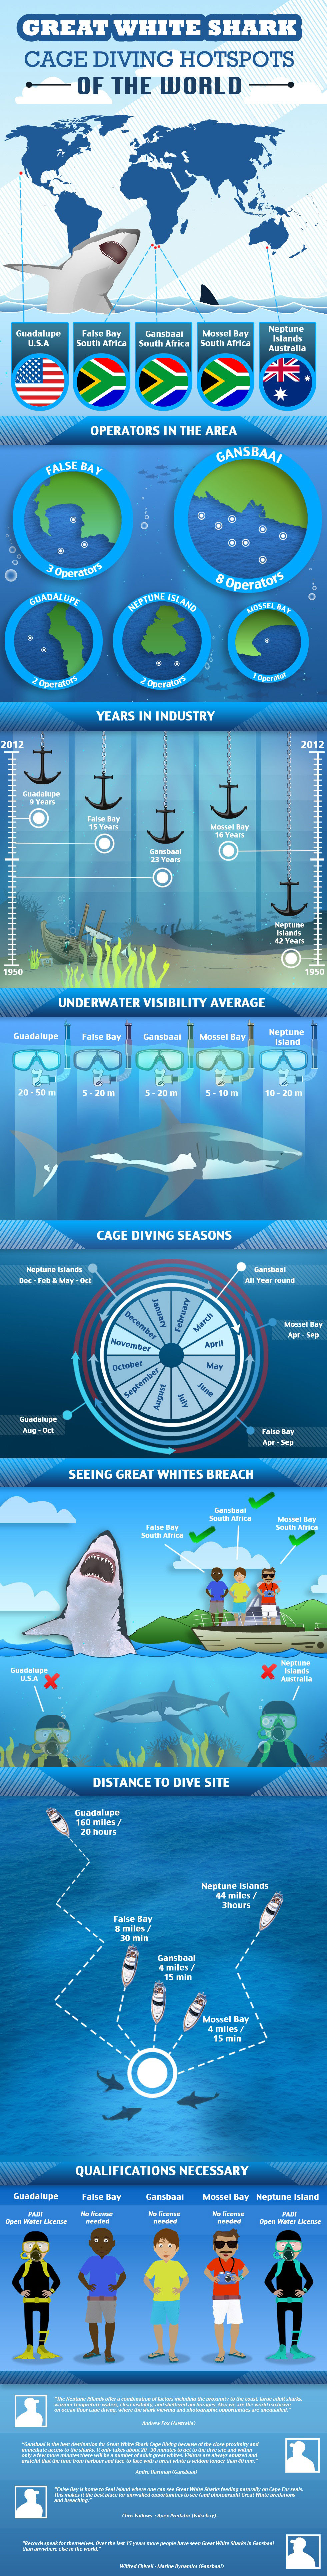 Great White Shark Cage Diving Hotspots of the World - Infographic